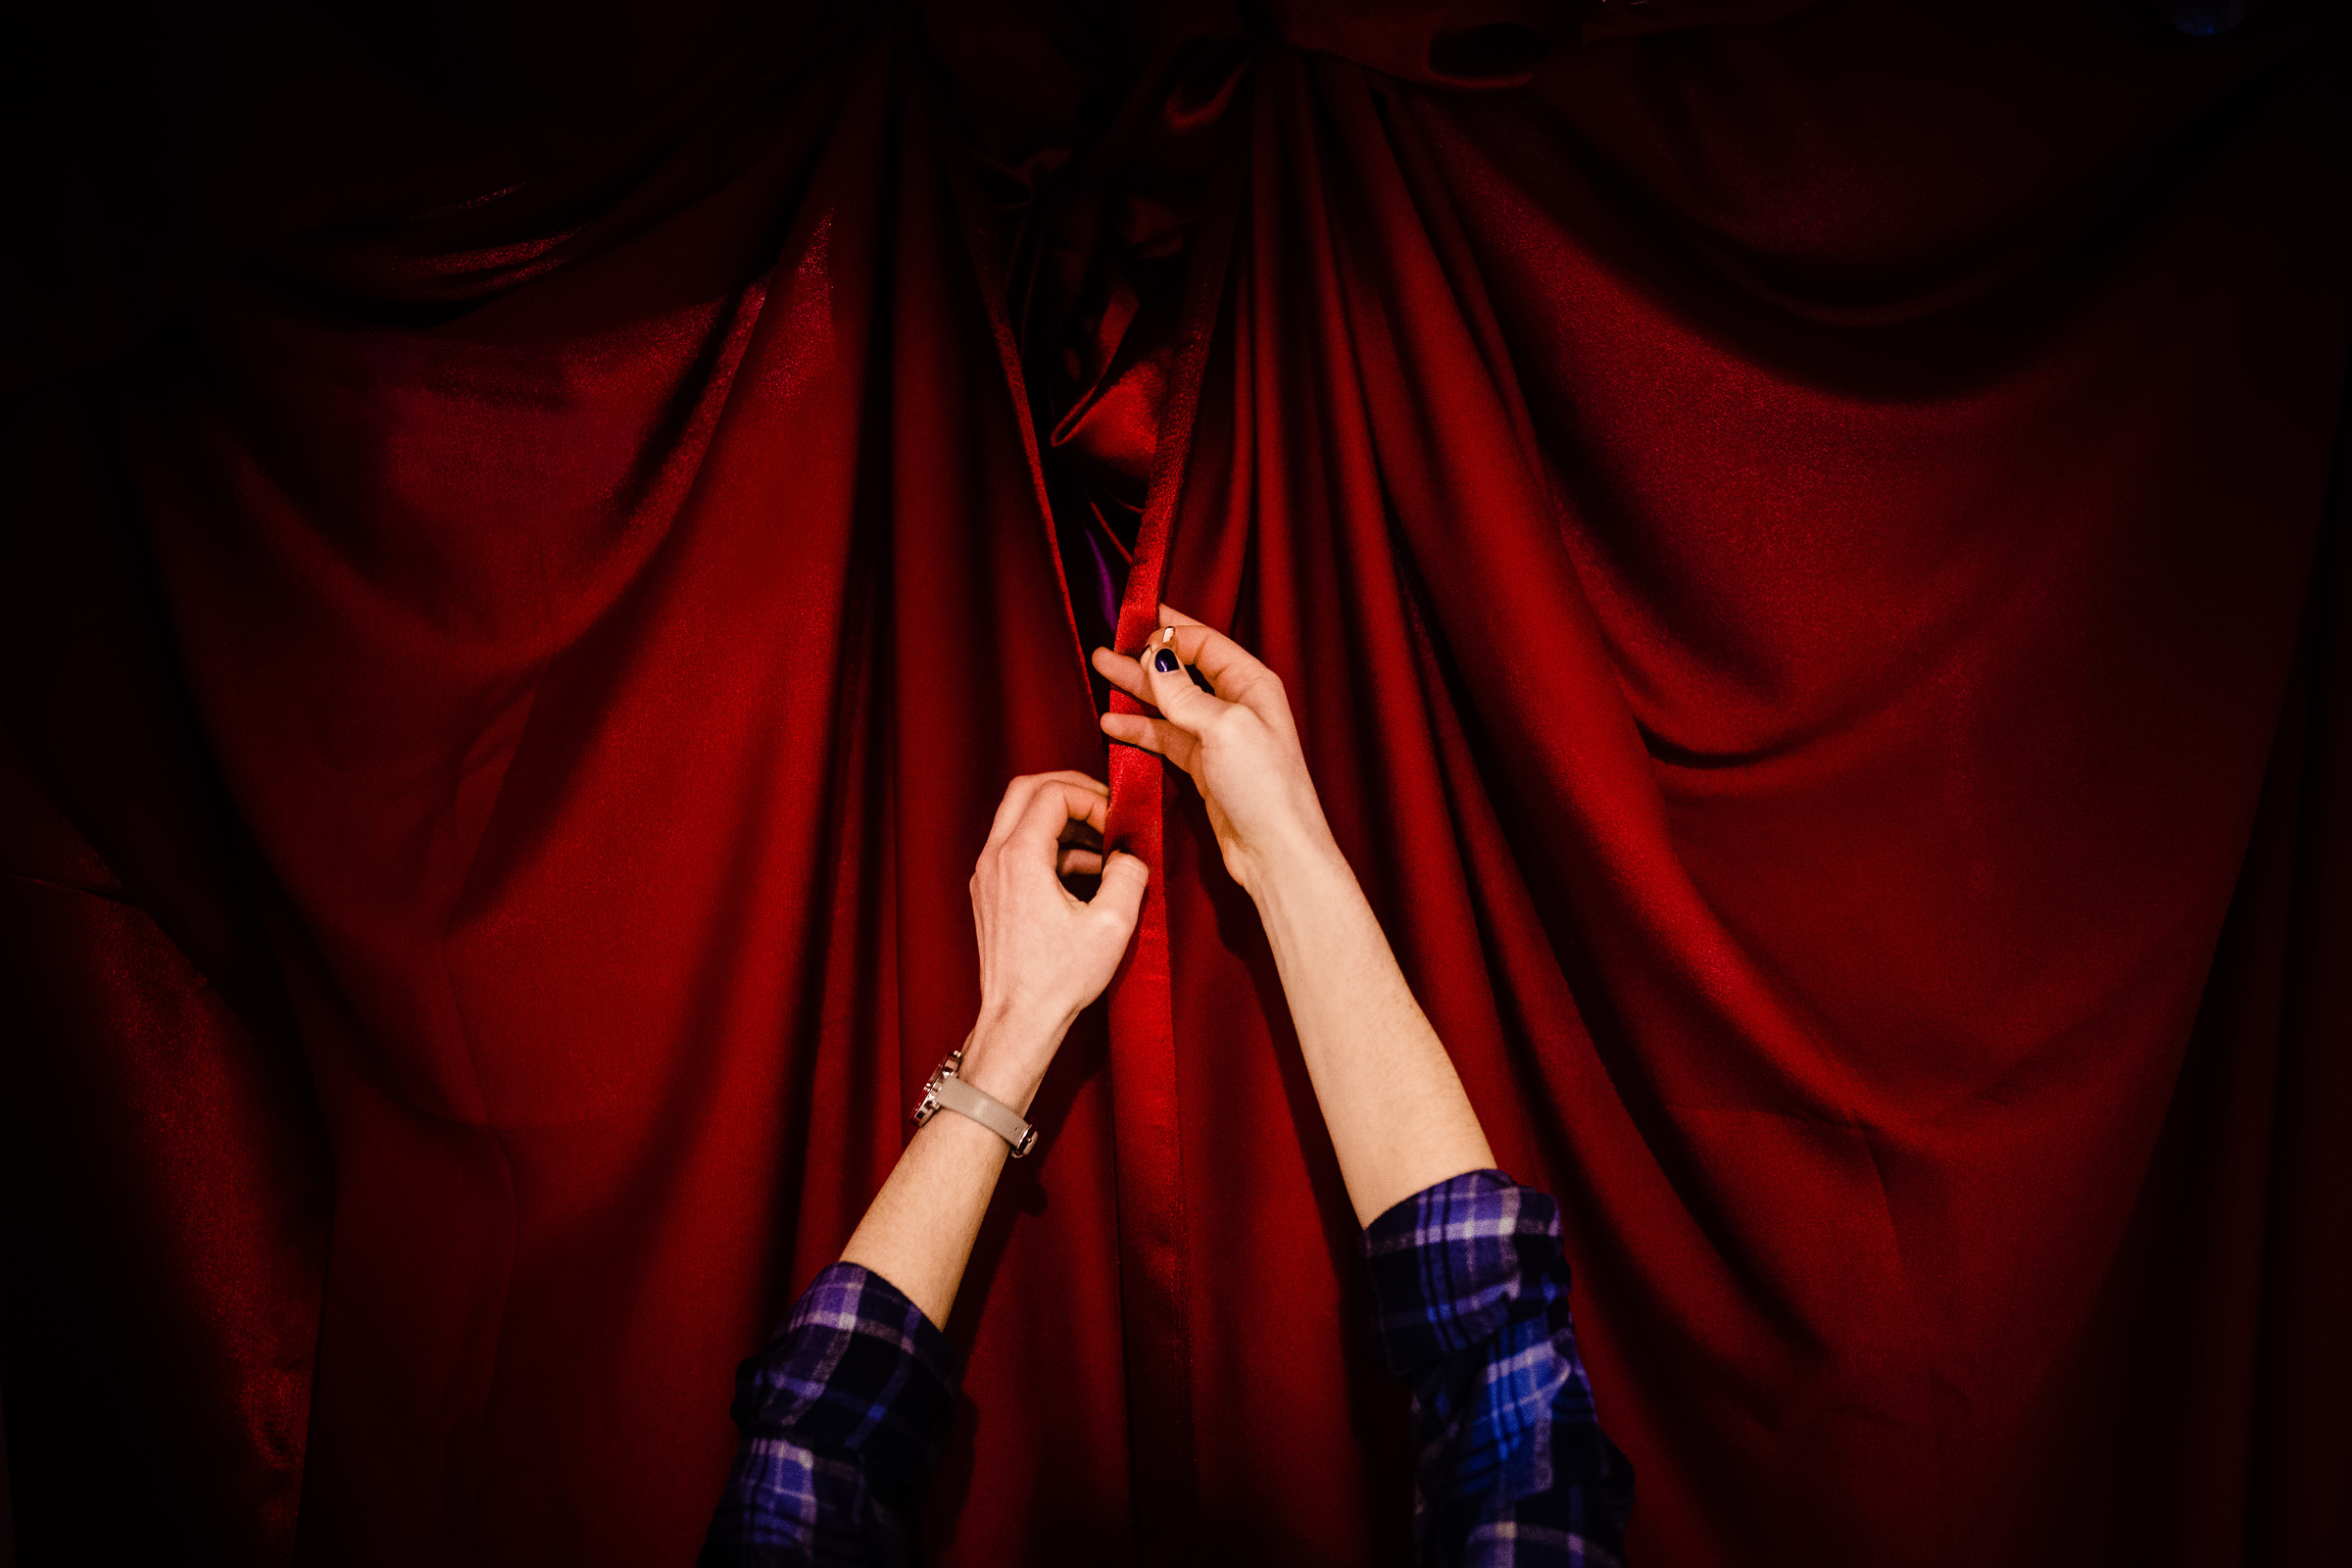 hands-on-red-theater-curtain-vinson-images